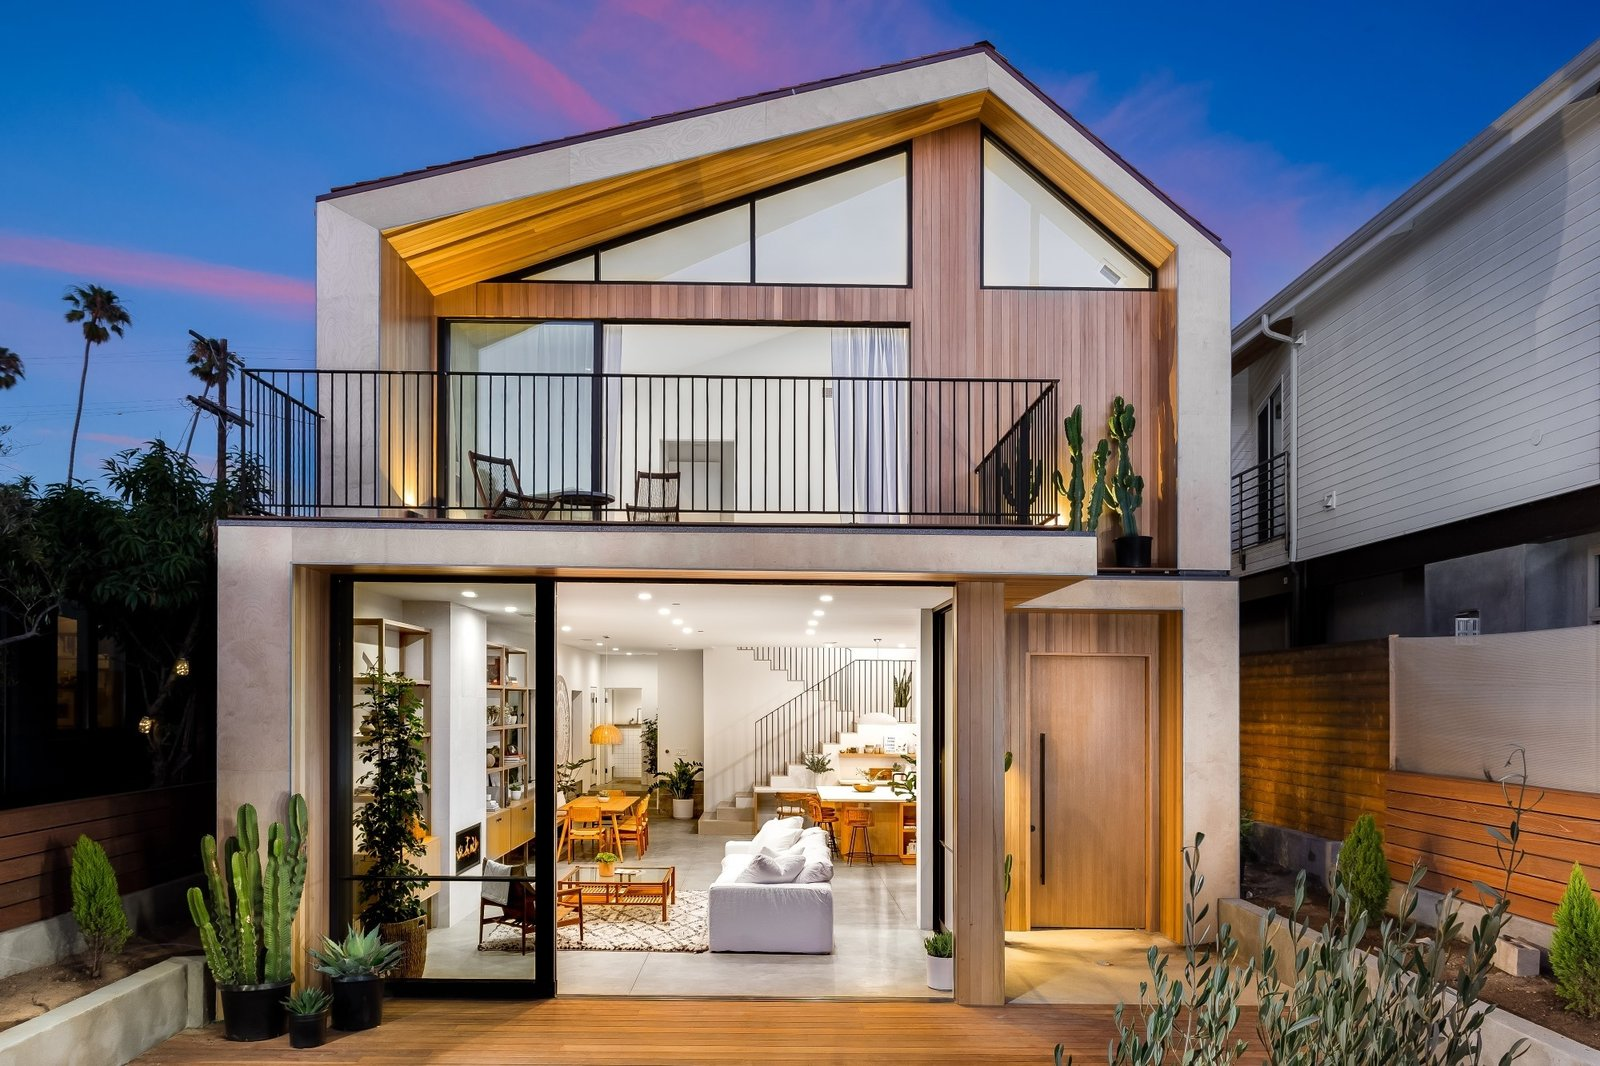 Tagged: Outdoor. Love Street Residence by Halton Pardee + Partners